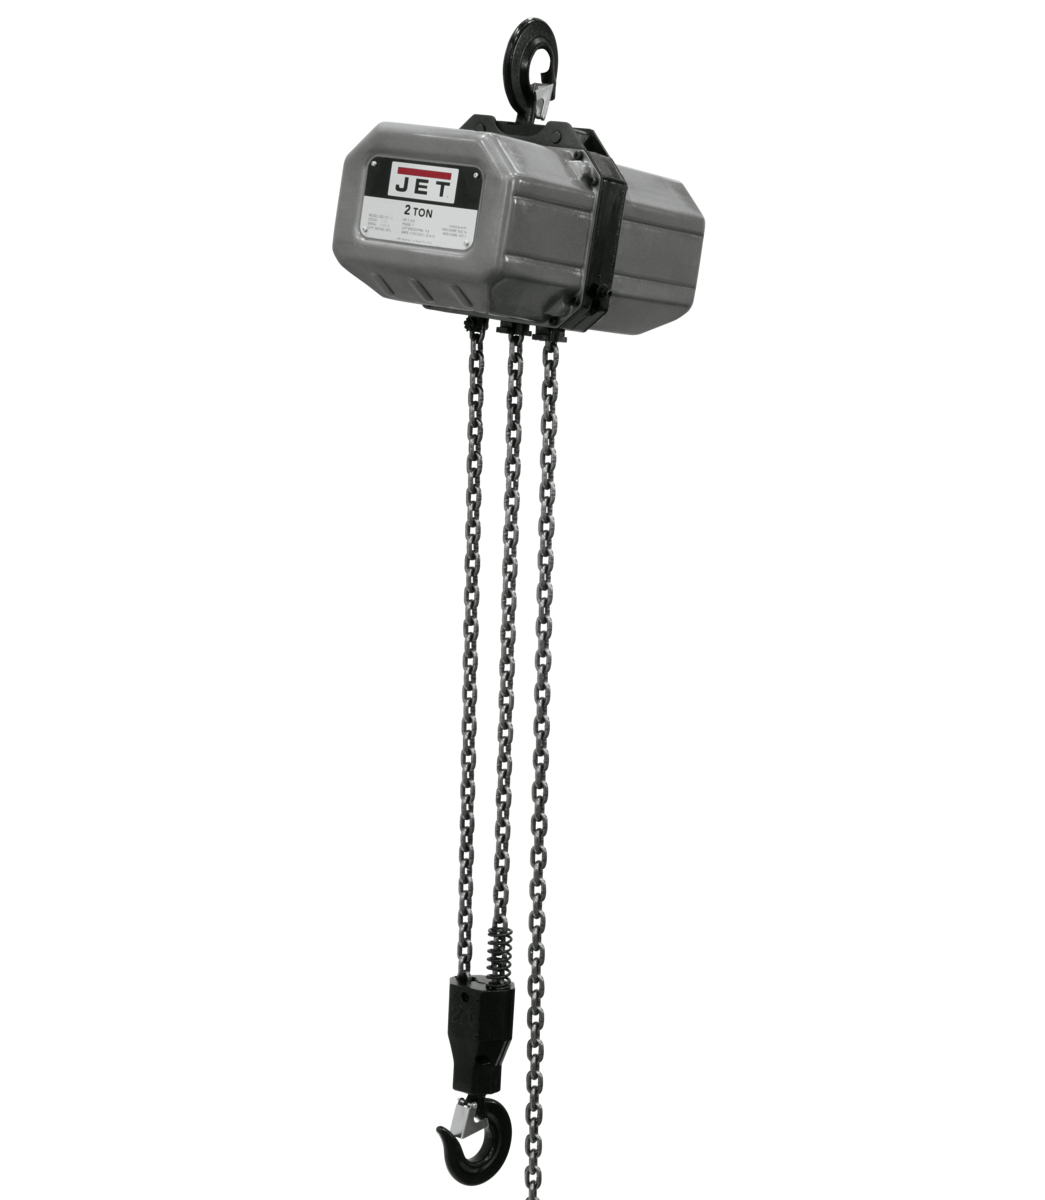 2SS-3C-10, 2-Ton Electric Chain Hoist 3-Phase 10' Lift